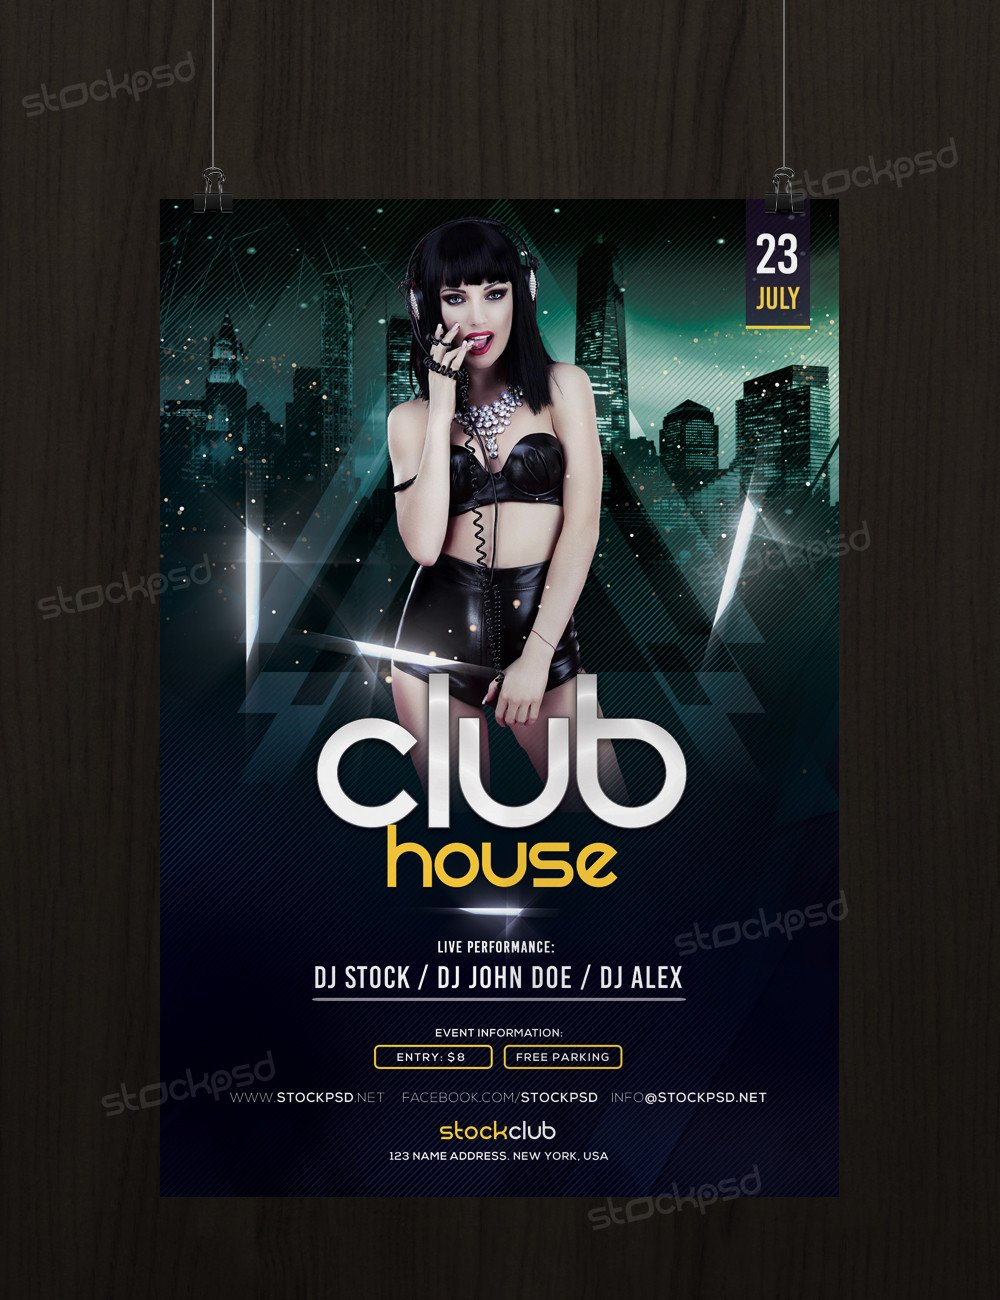 Free Photoshop Flyer Templates Get Free Club House Flyer Template Shop